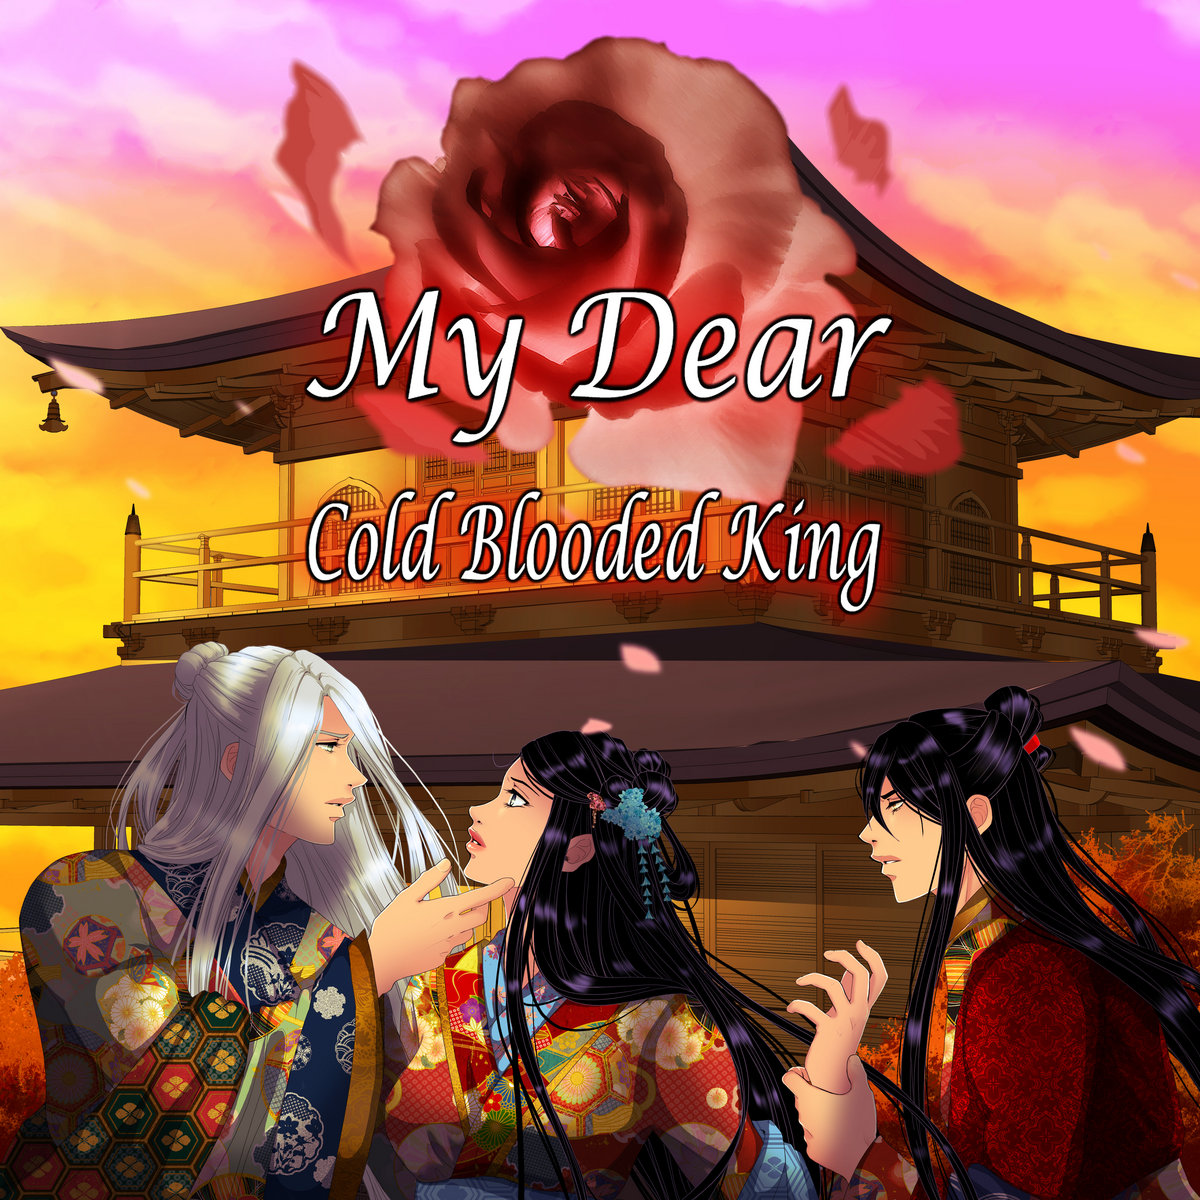 Fallen Petals (Music Featured In My Dear Cold Blooded King